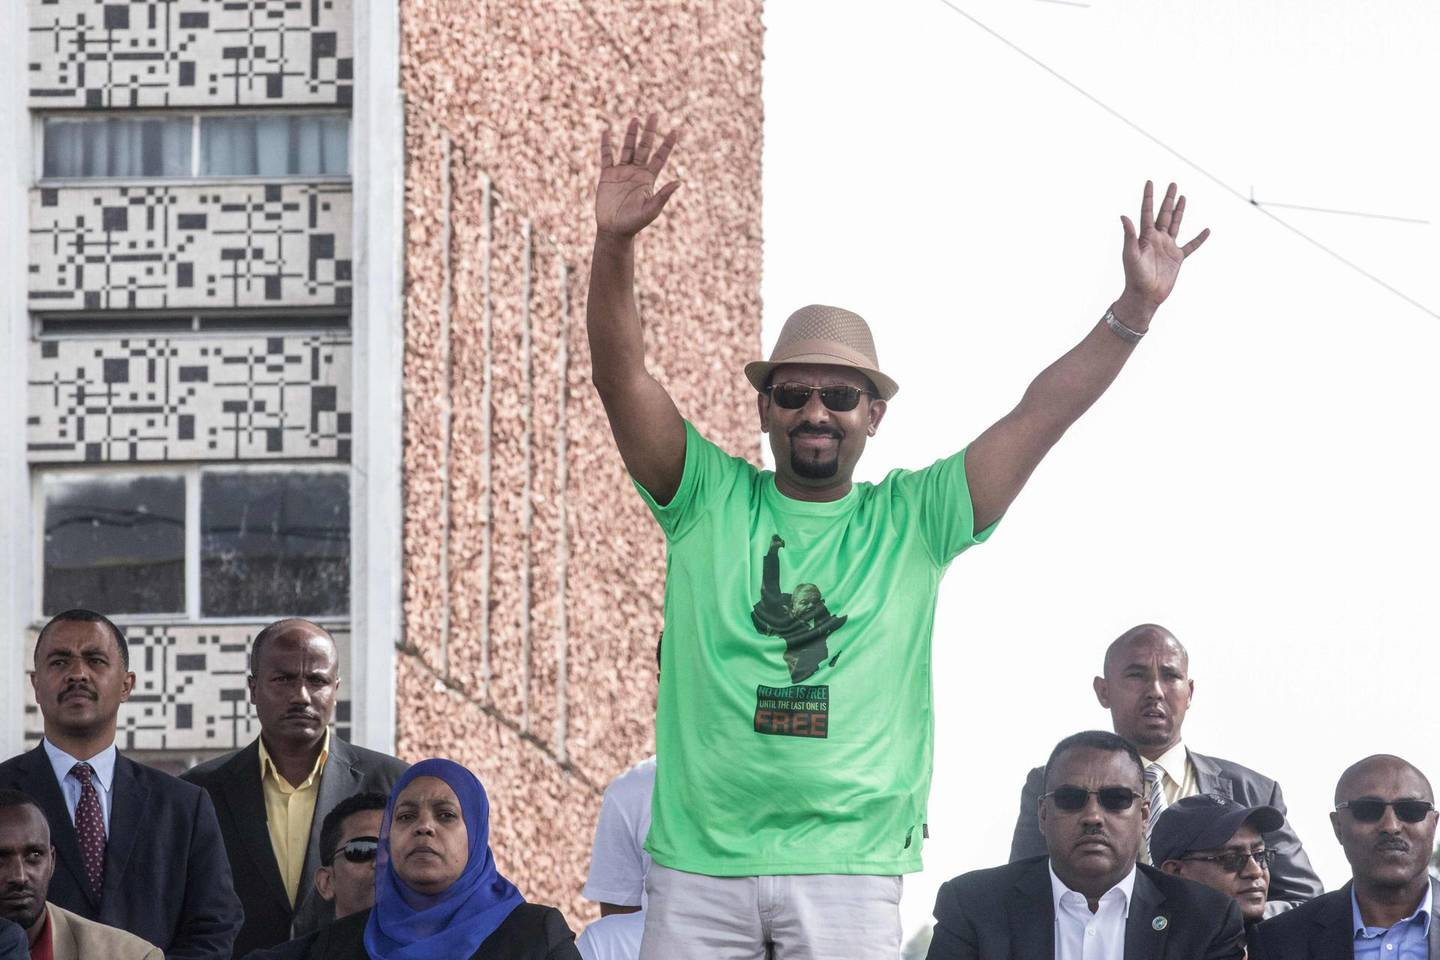 Ethiopia Prime Minister Abiy Ahmed waves to the crowd during a rally on Meskel Square in Addis Ababa on June 23, 2018. A blast at a rally in Ethiopia's capital today in support of new Prime Minister Abiy Ahmed killed several people, state media quoted the premier as saying. / AFP / YONAS TADESE